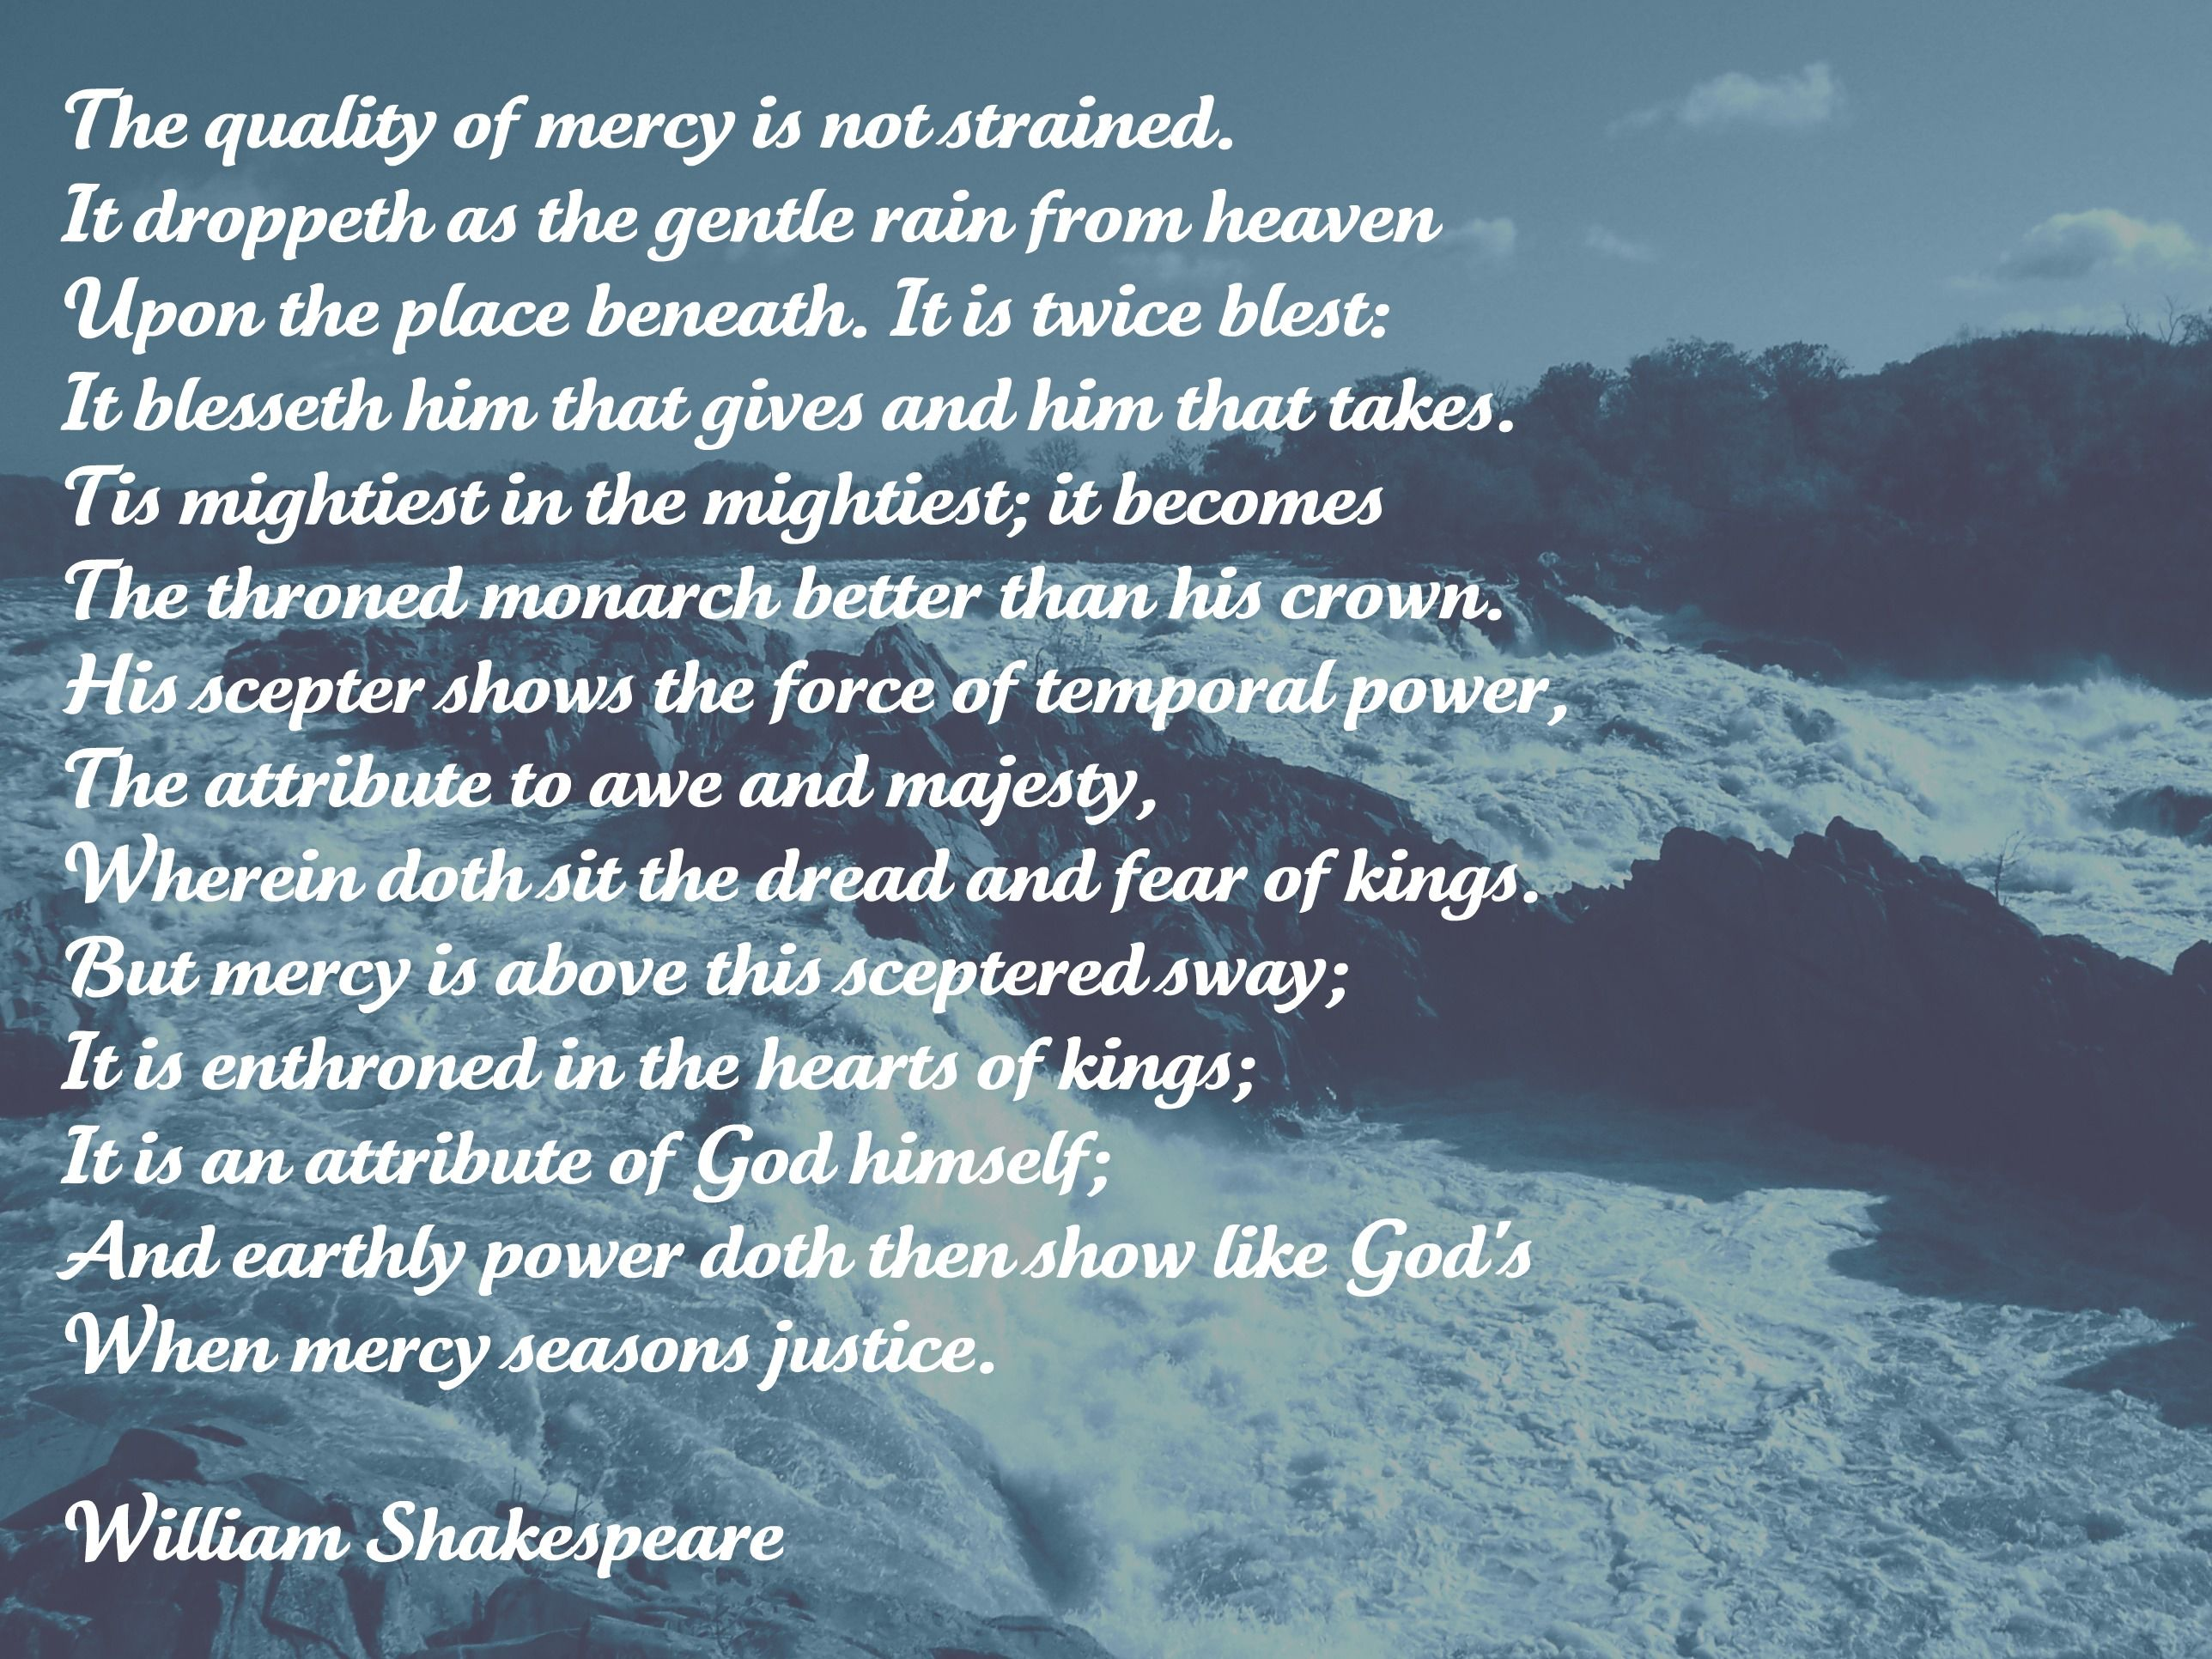 best images about merchant of venice the the quality of mercy i love this shakespeare quote from the merchant of venice